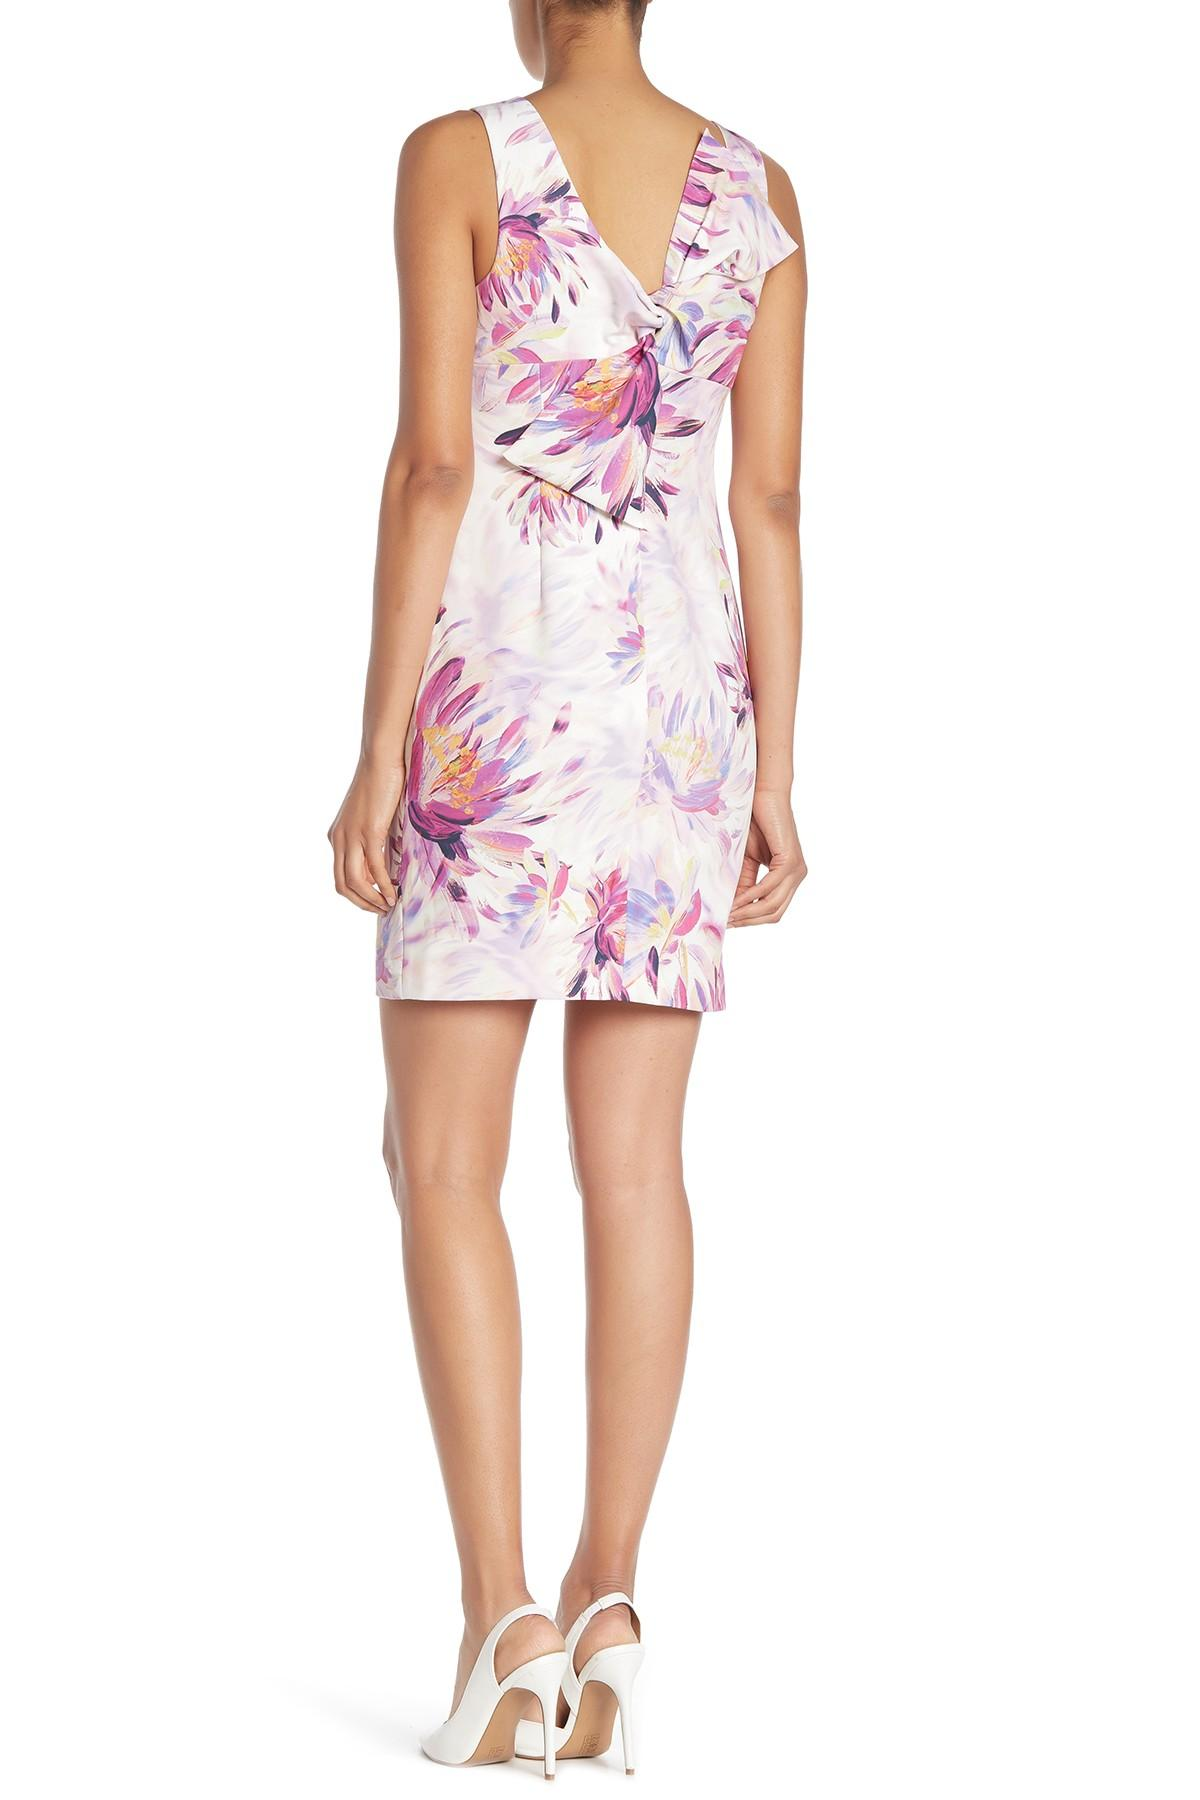 a9598182ff Trina Turk - Pink Clemente Floral Bow Back Dress - Lyst. View fullscreen